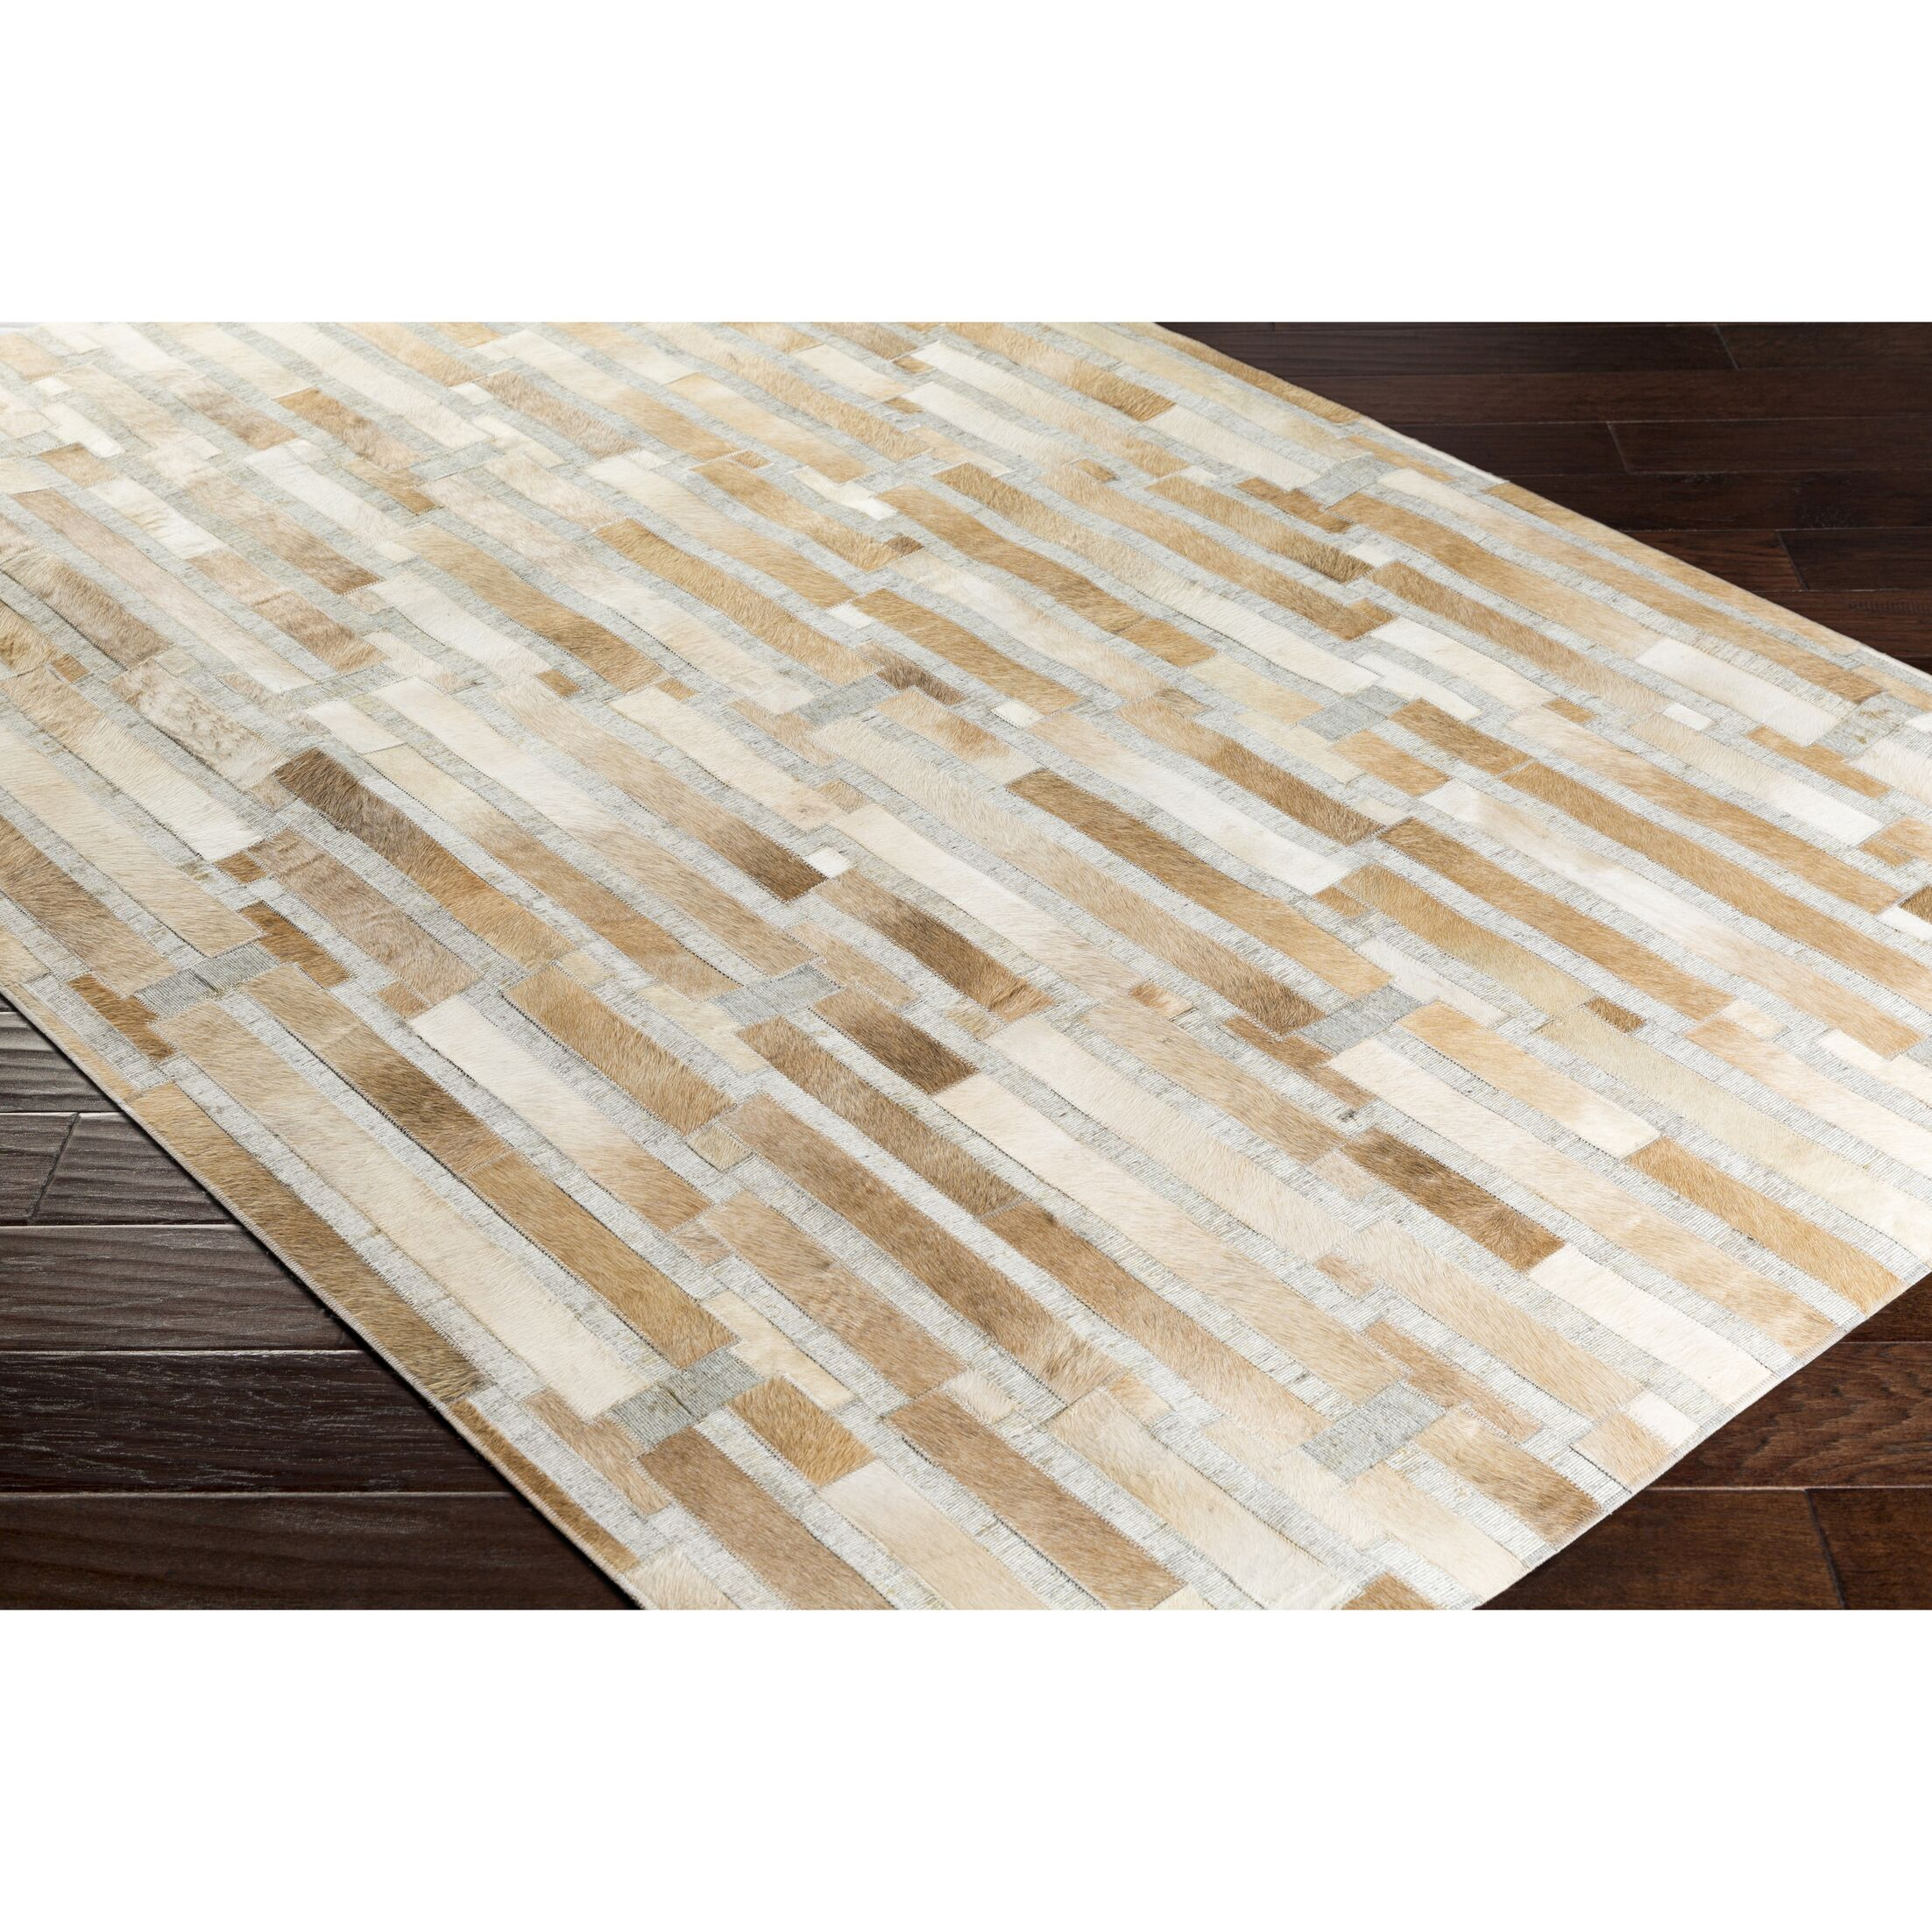 Armando Hand-Crafted Geometric Brown/Neutral Area Rug Rug Size: Rectangle 5' x 7'6